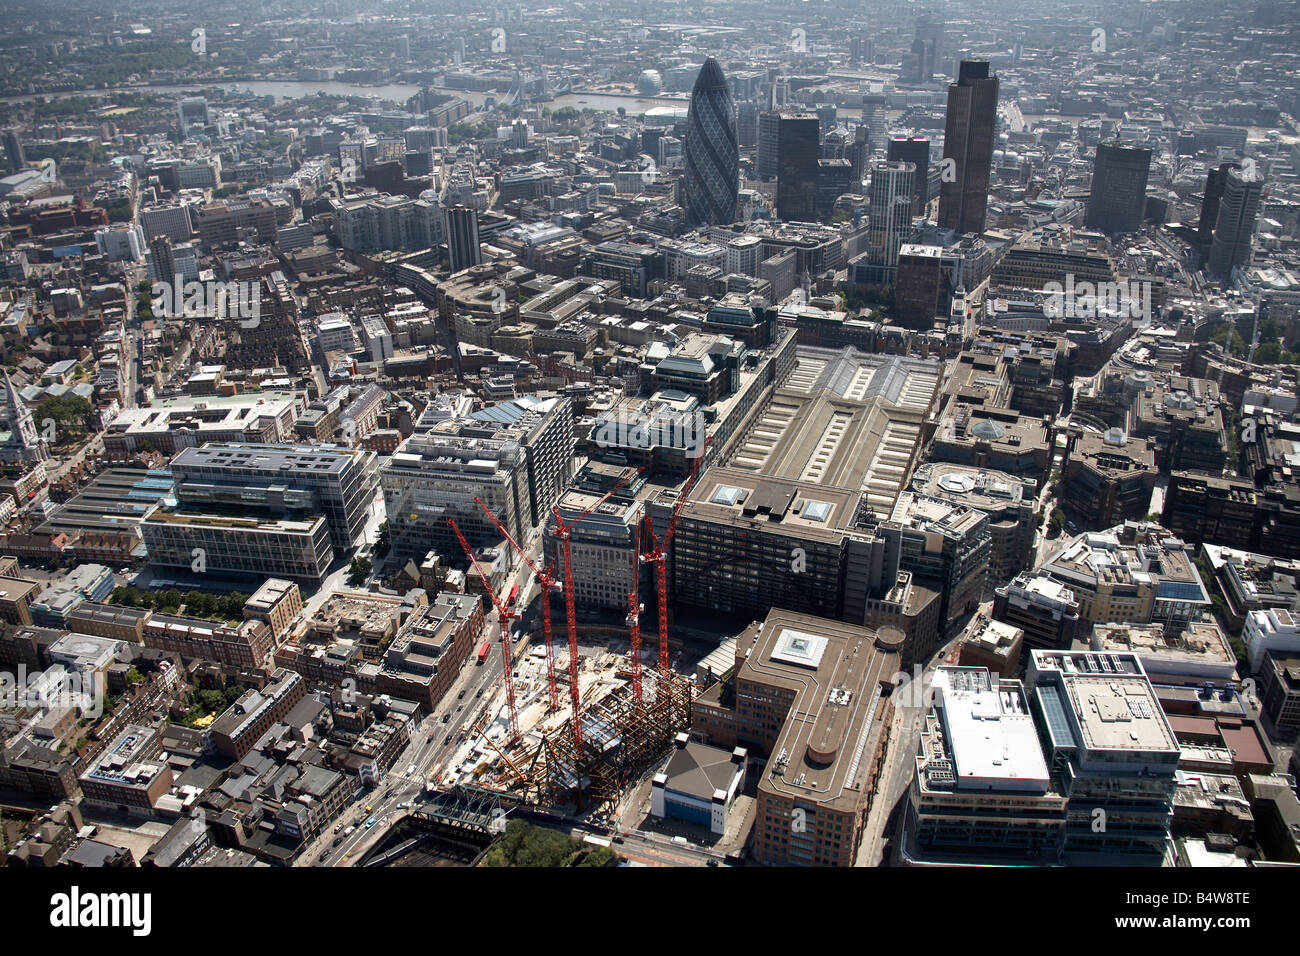 Aerial view south of Broadgate Tower Construction Site Liverpool Street Station City of London tower blocks The - Stock Image